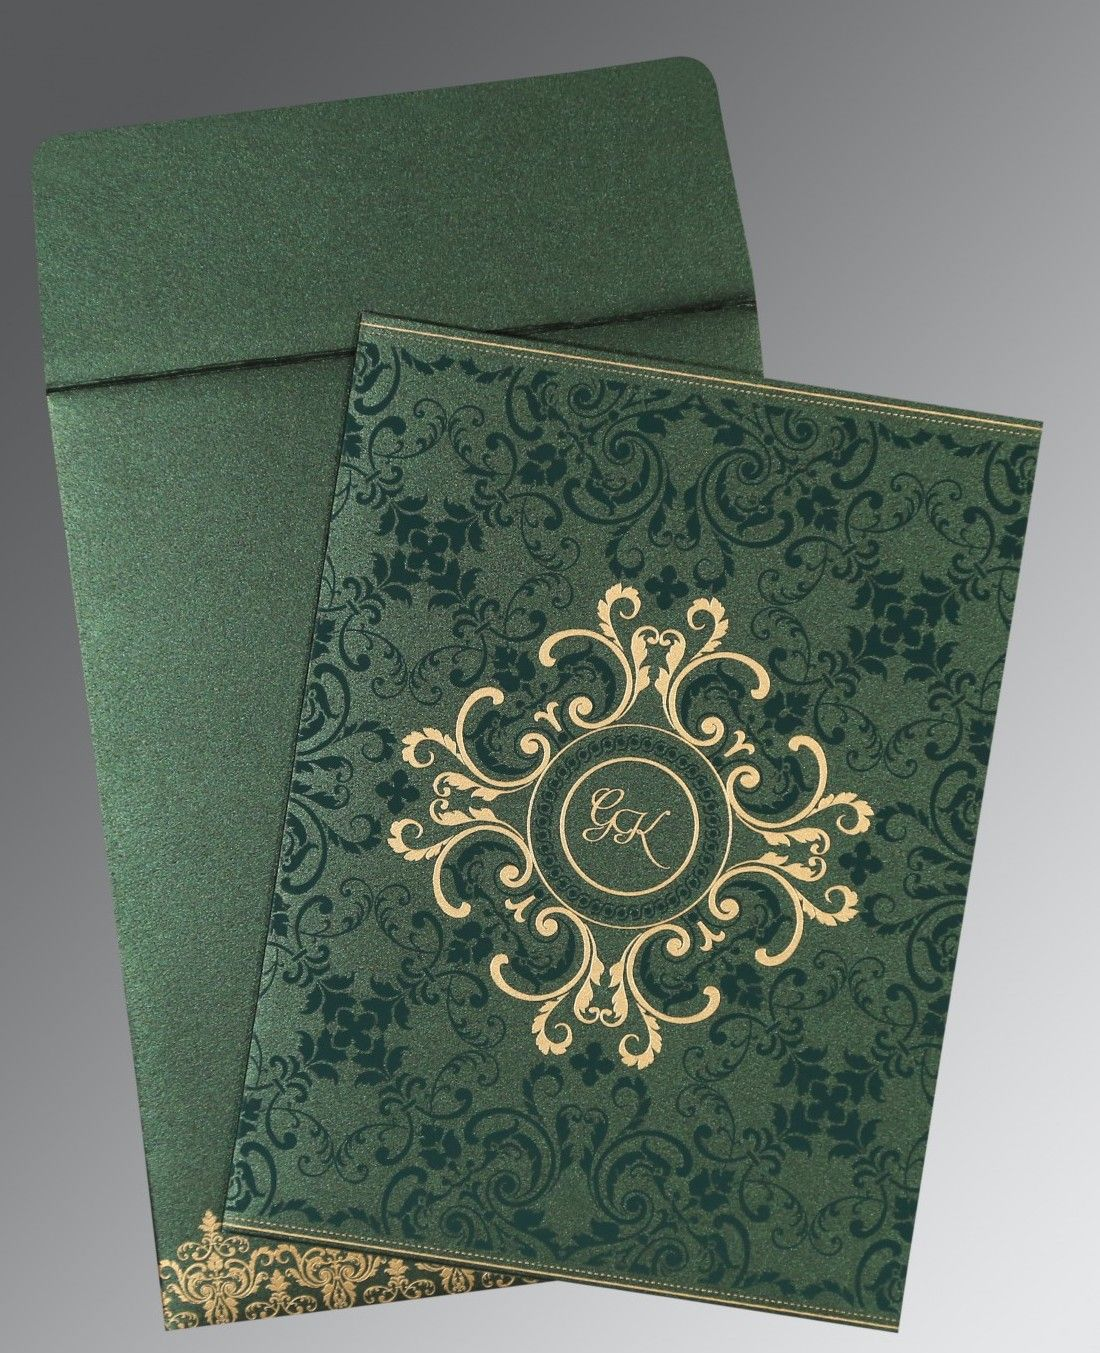 Top 5 Trends Of Muslim Wedding Invitations Muslim Wedding Invitations Wedding Card Design Indian Wedding Invitation Trends